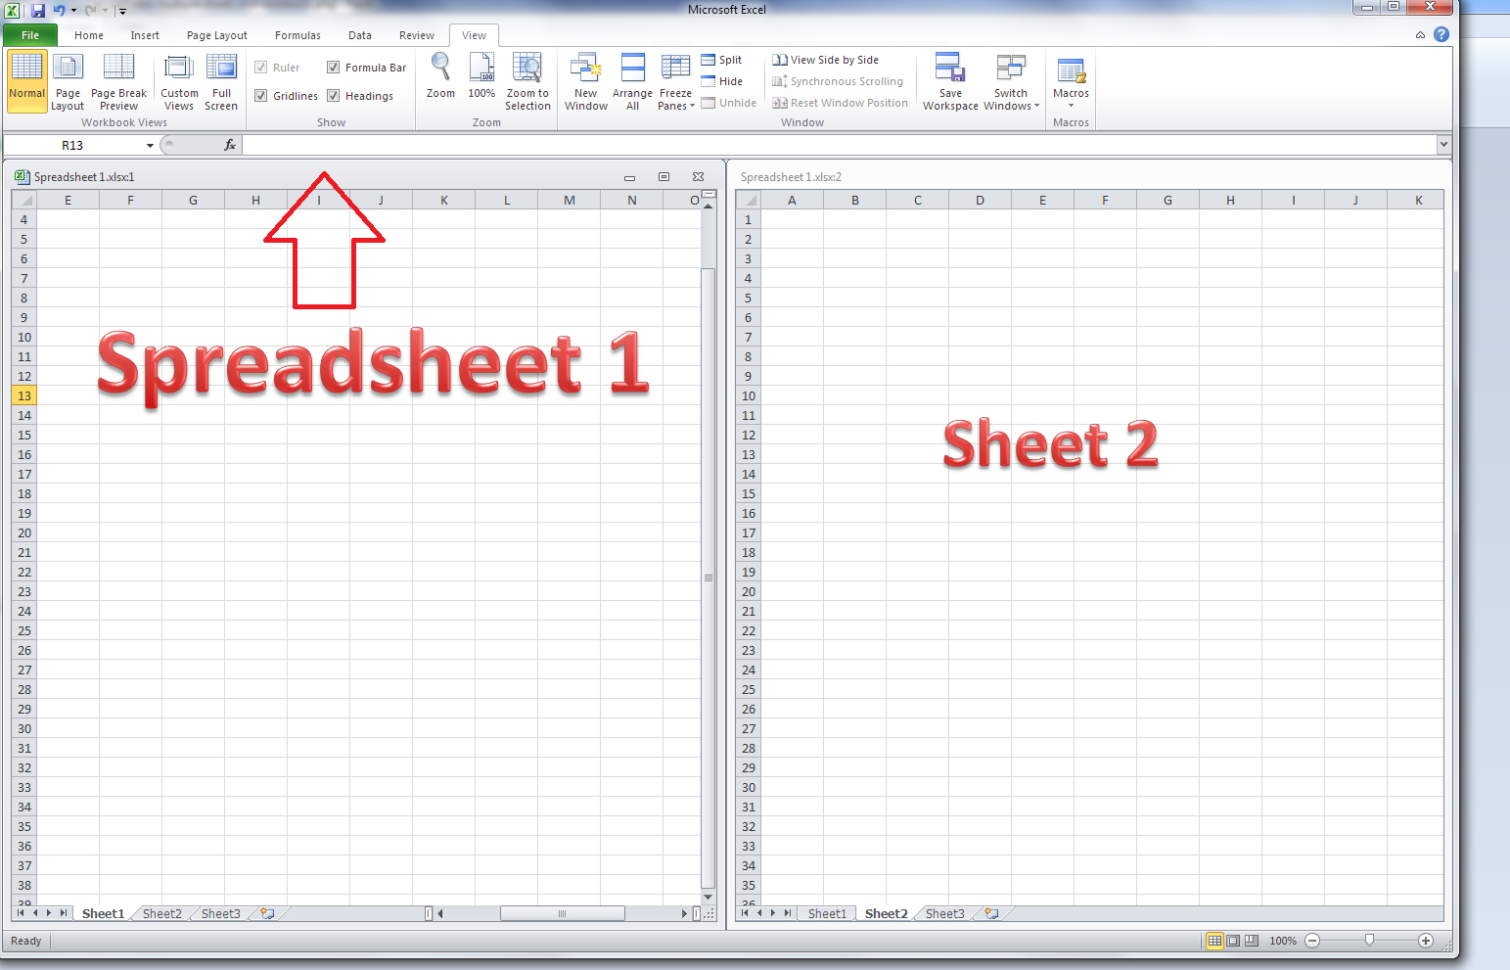 Working With Spreadsheets In Excel Intended For How Do I View Two Sheets Of An Excel Workbook At The Same Time